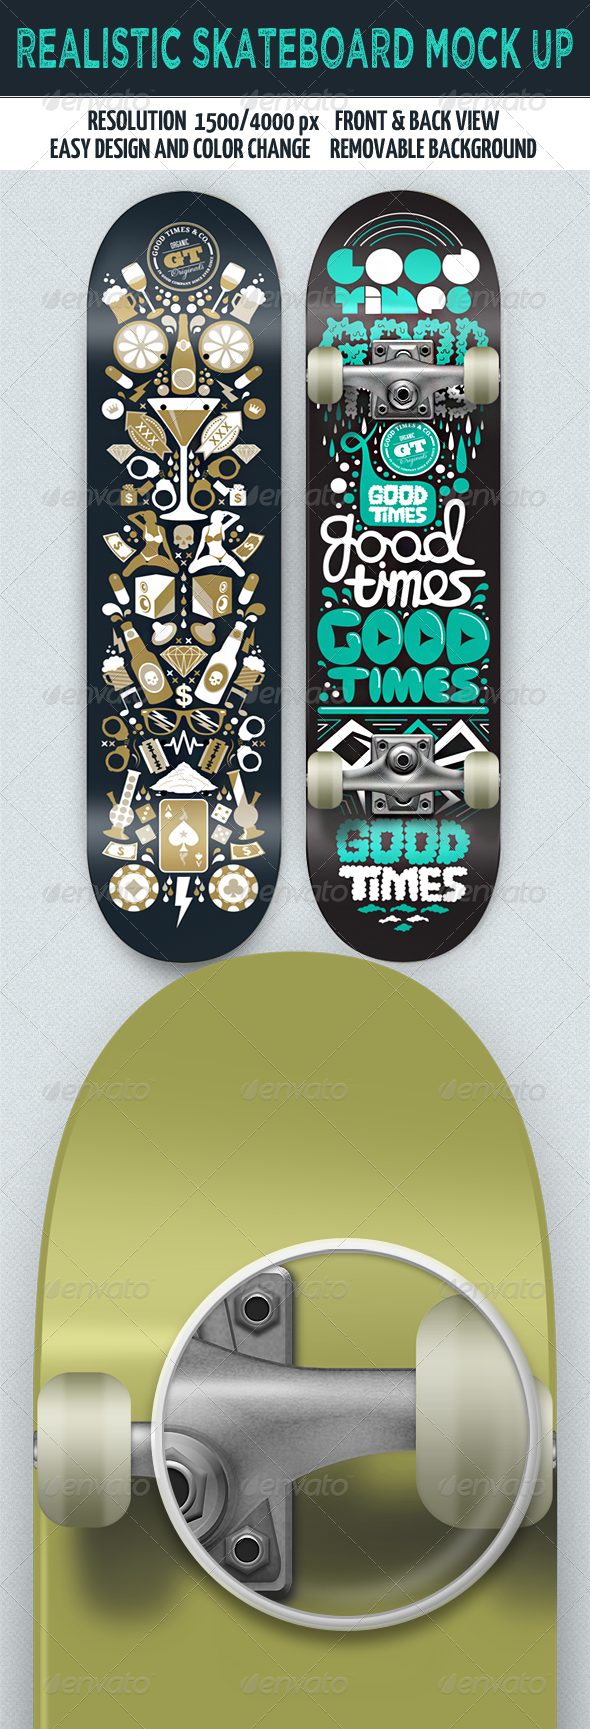 GraphicRiver Grapulo s Skateboard Mock-Up 4895030